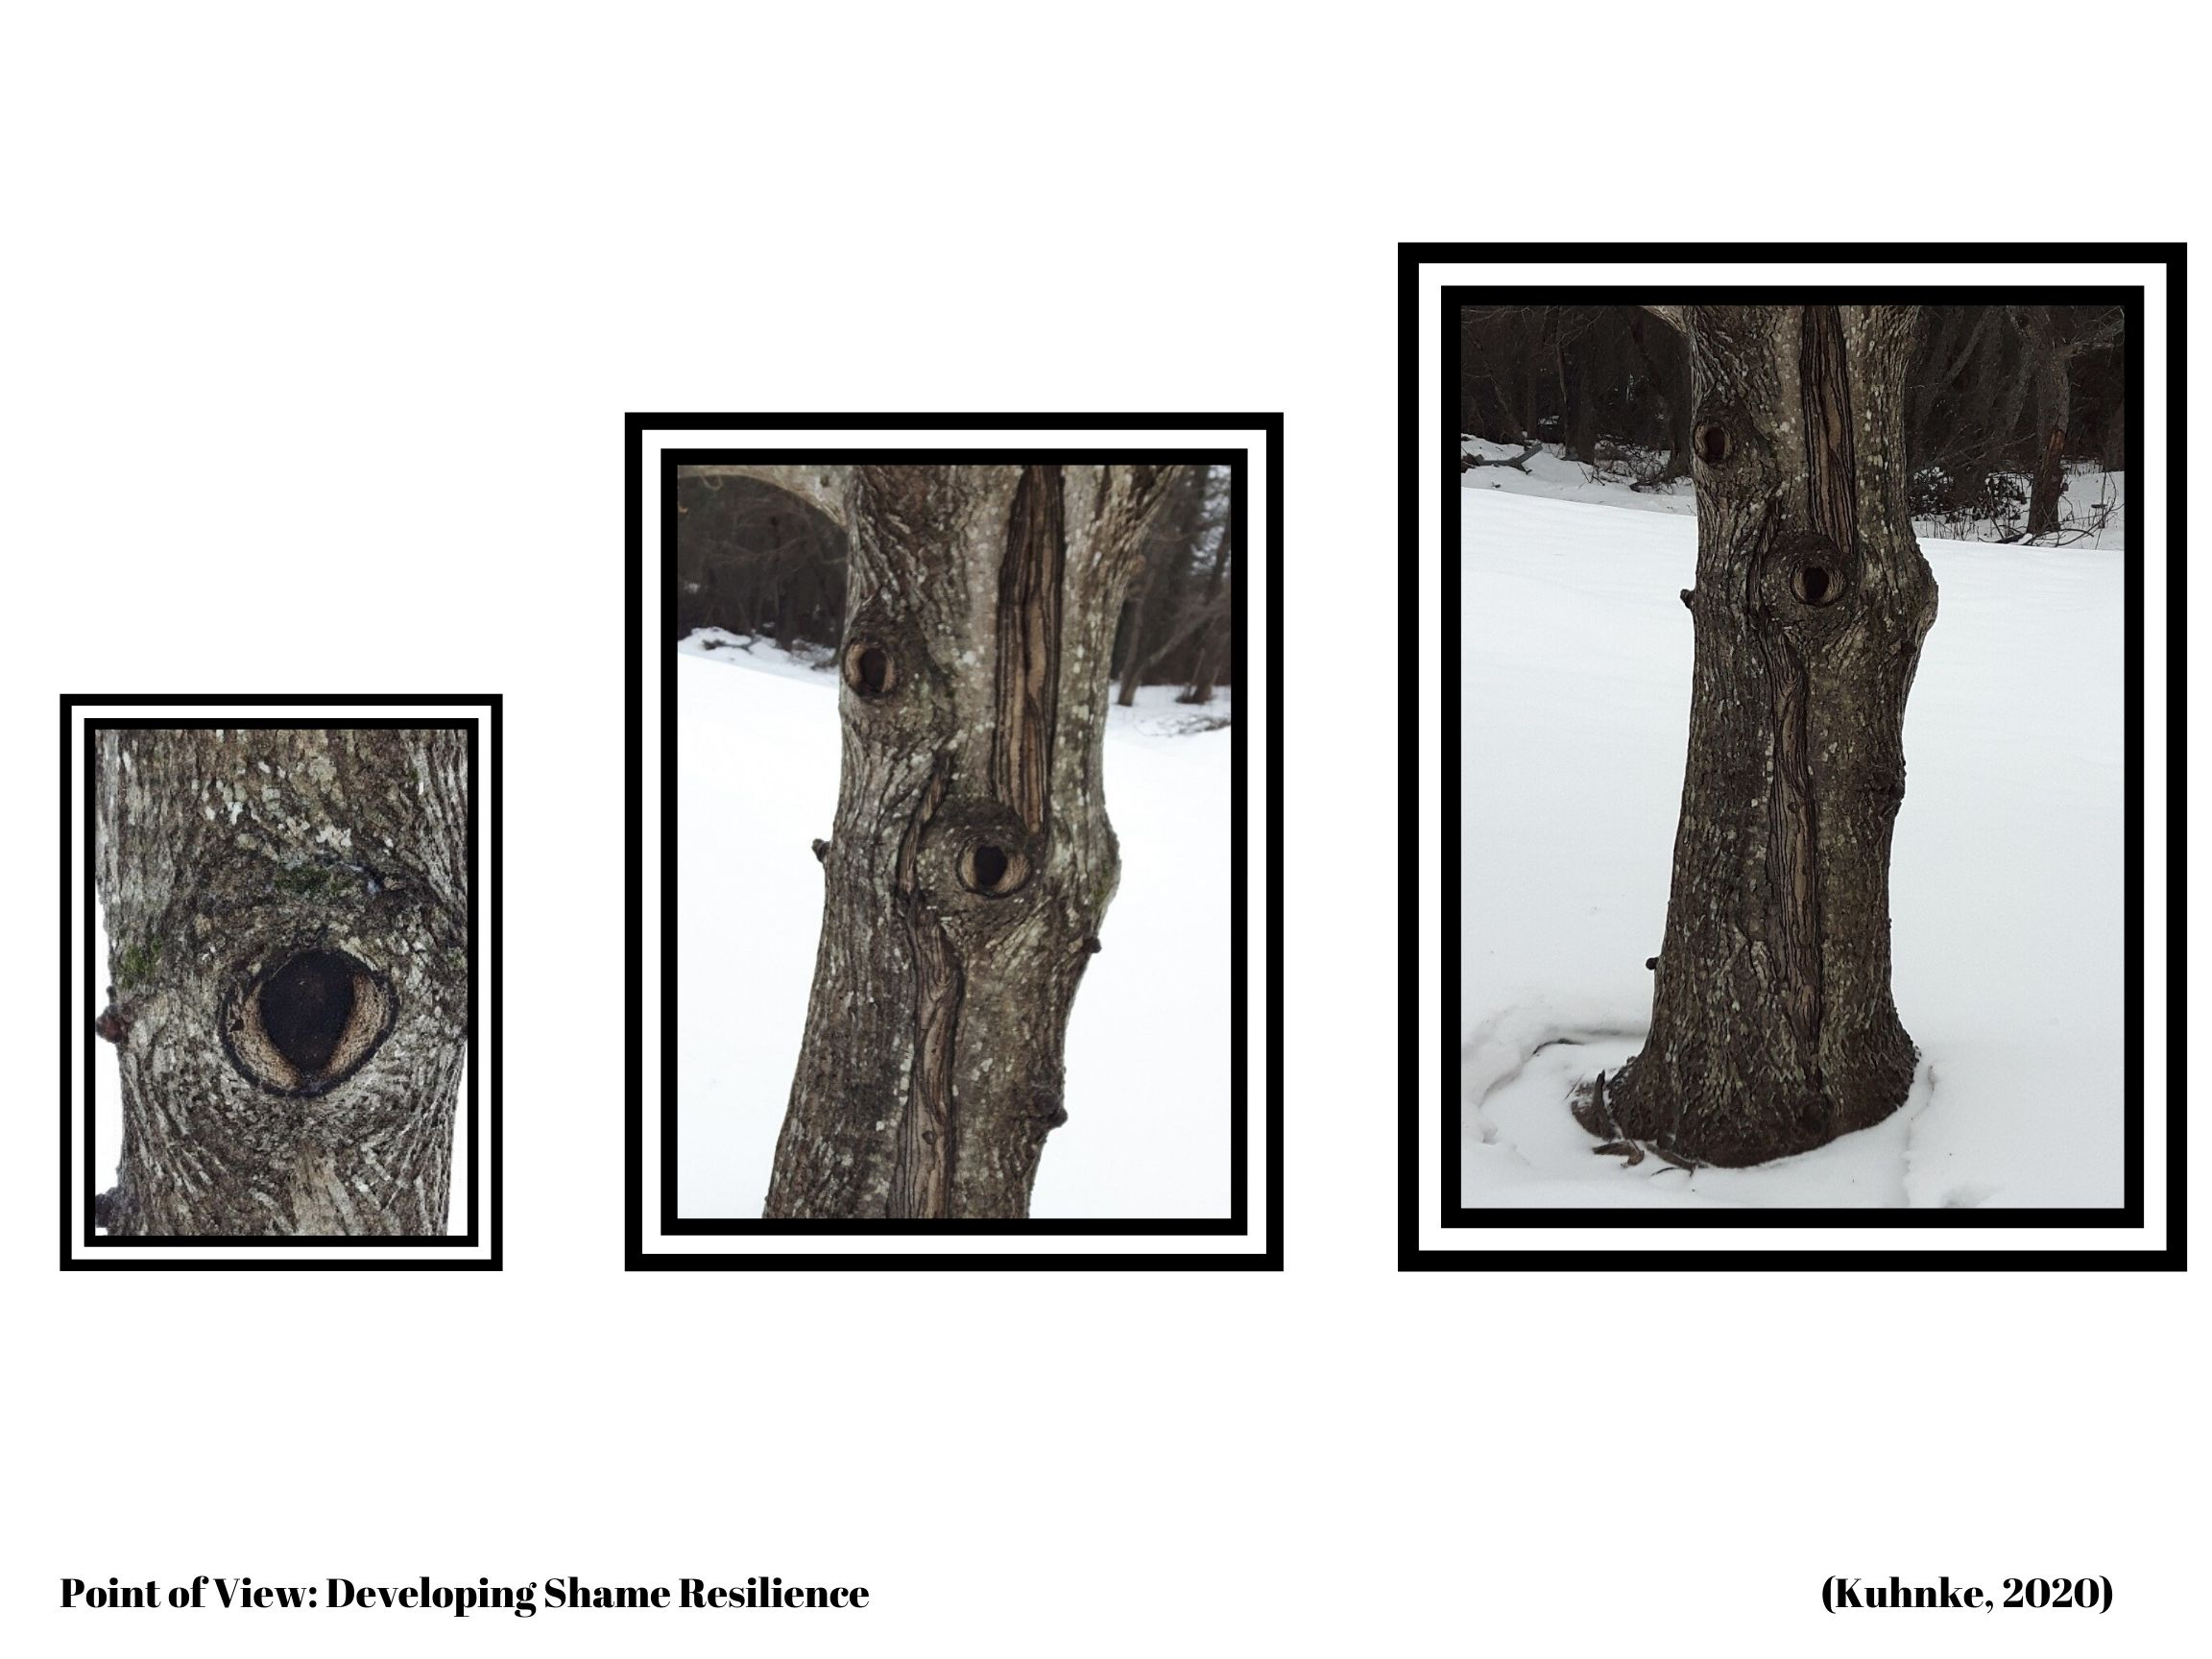 three tree trunks with different perspectives